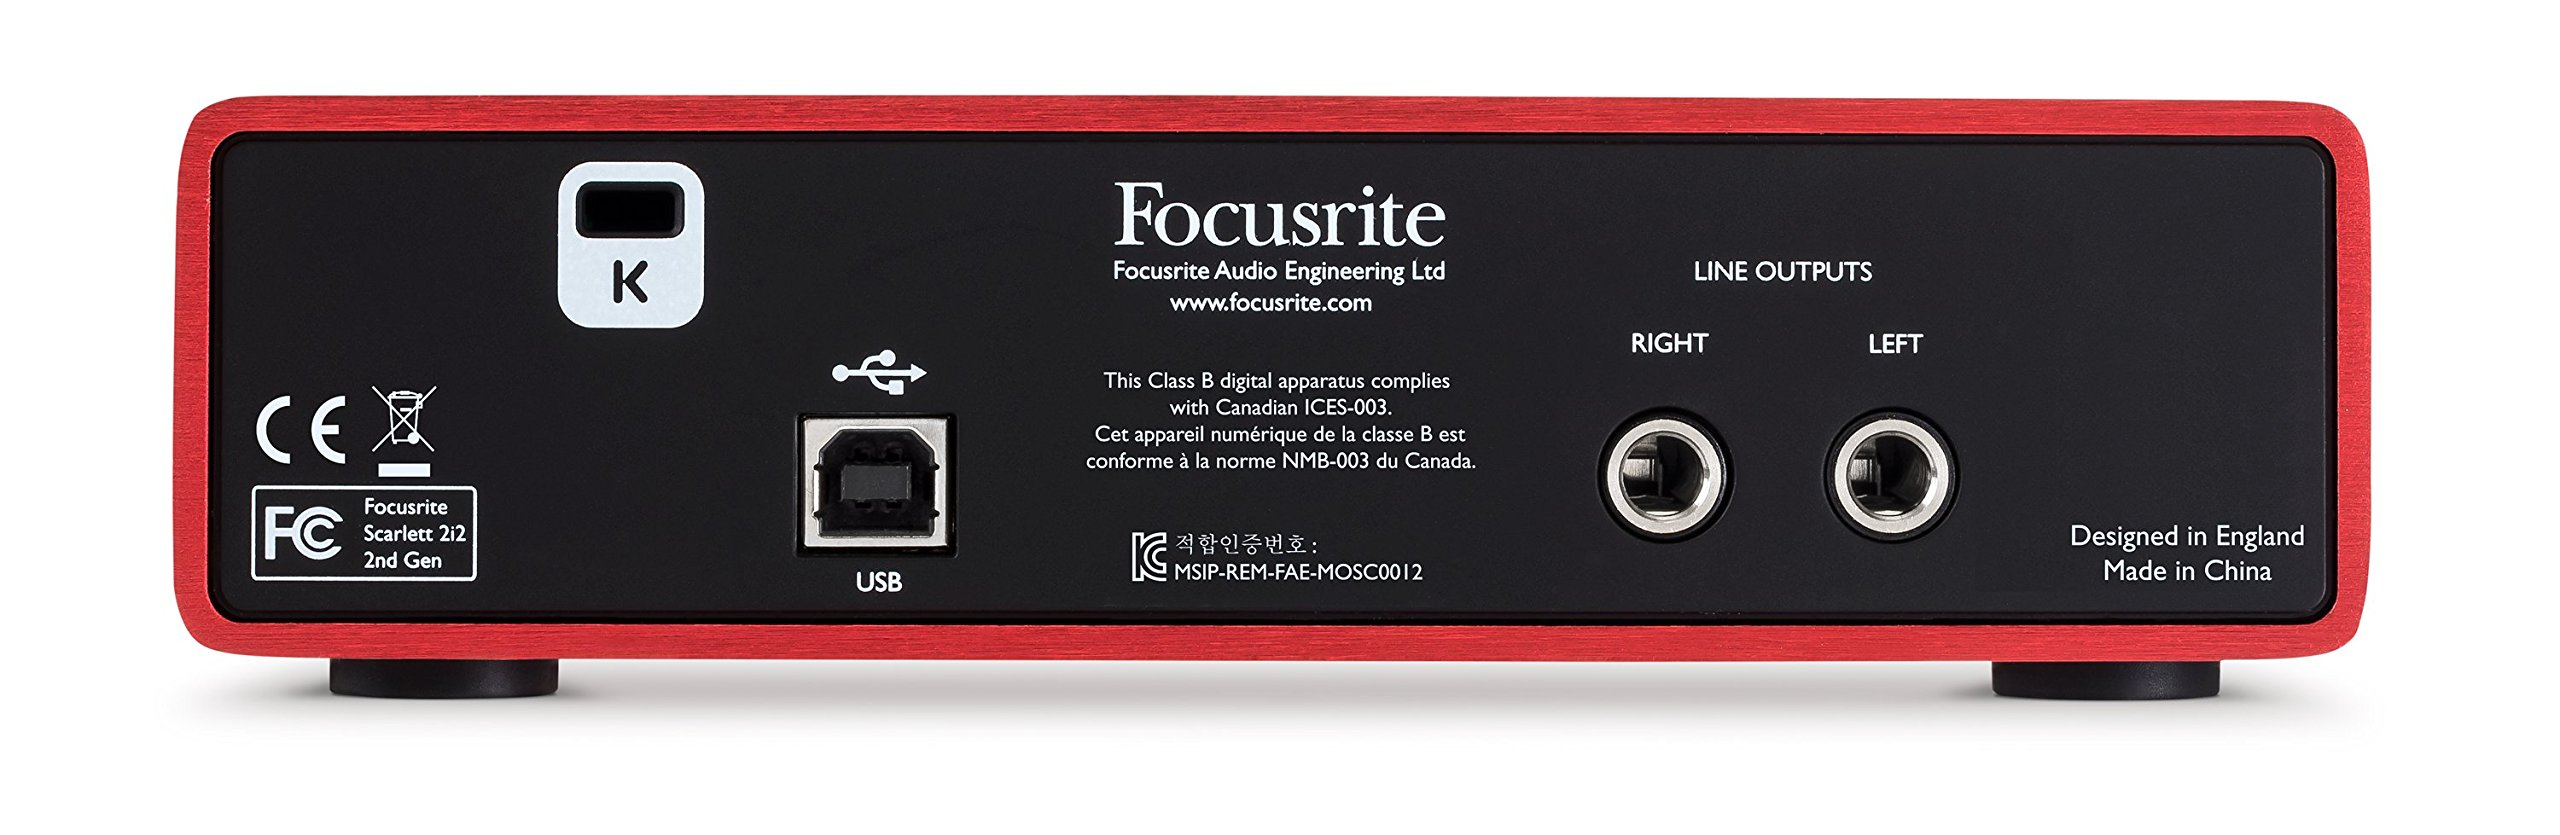 Focusrite Scarlett 2i2 (2nd Gen) USB Audio Interface with Pro Tools | First by Focusrite (Image #4)